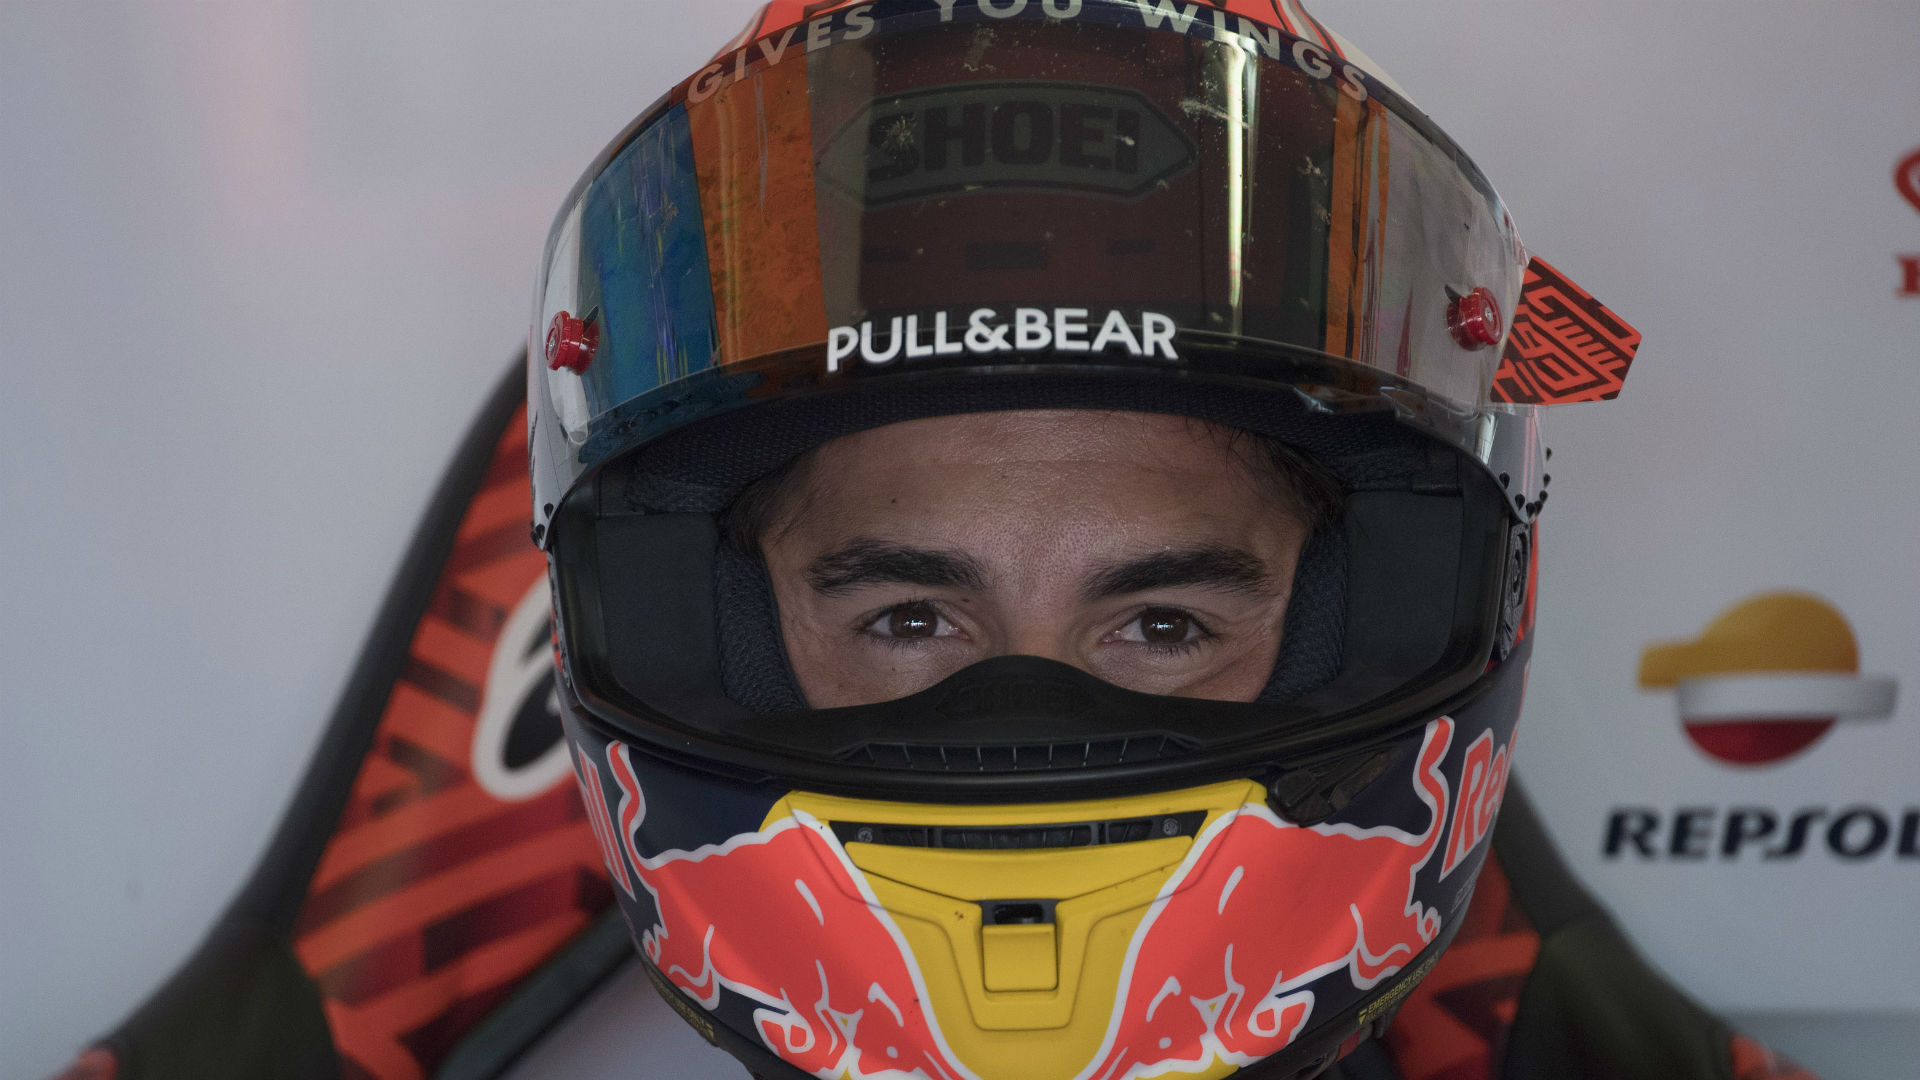 Having been in a fight for track position with Valentino Rossi during qualifying, Marc Marquez was eager to upset the Misano favourite.